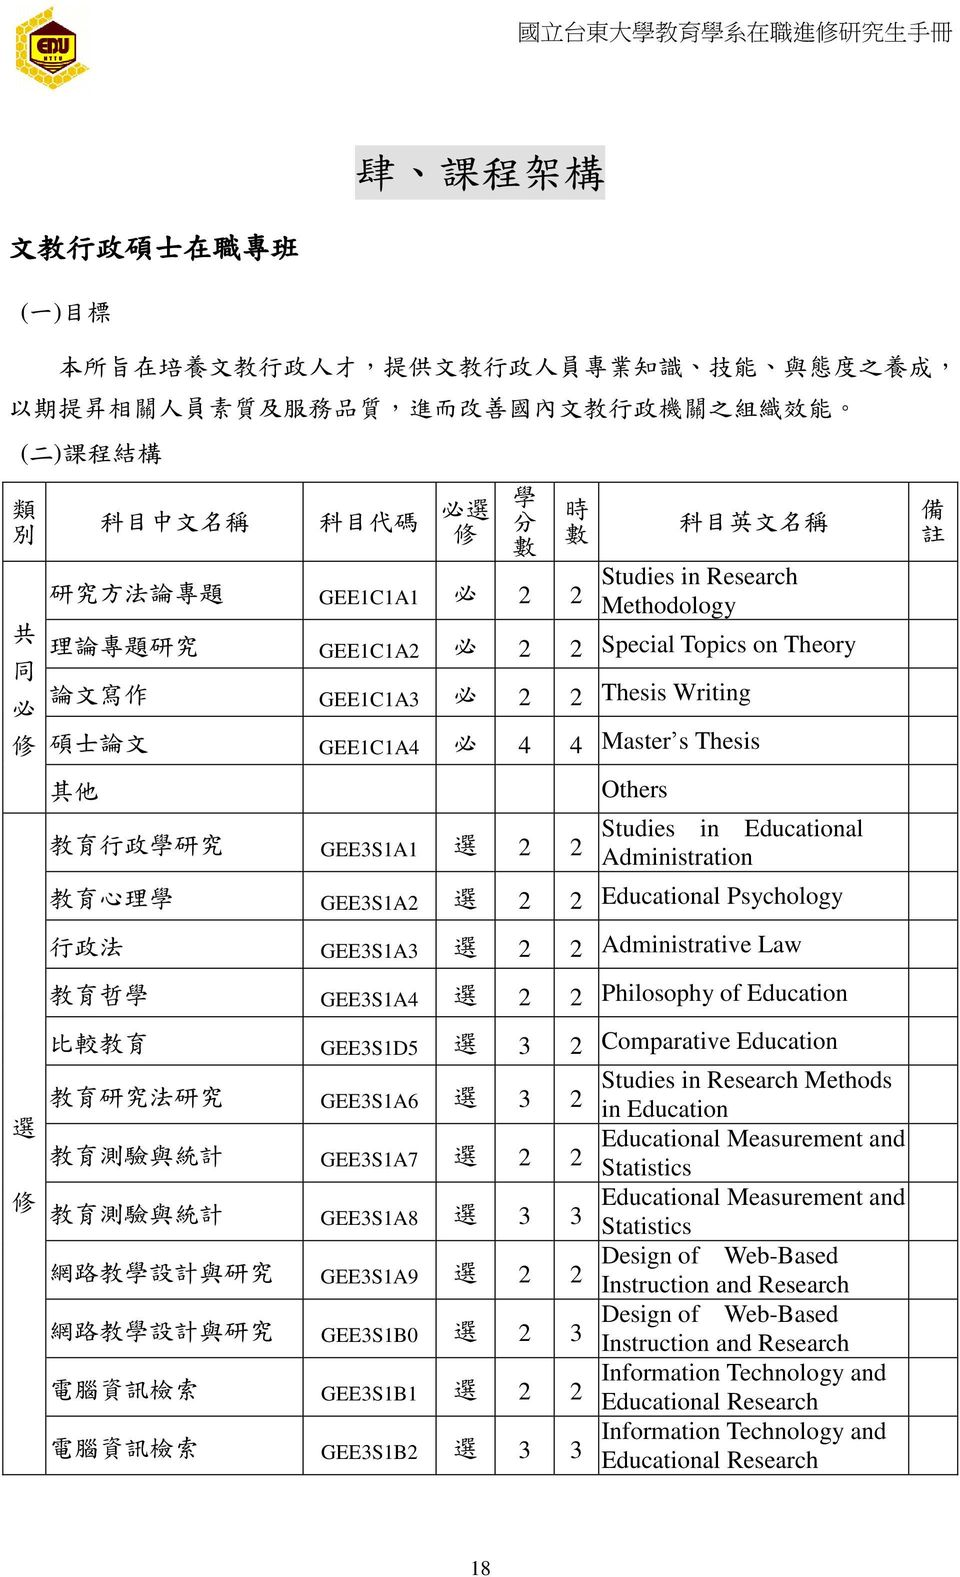 Writing 碩 士 論 文 GEE1C1A4 必 4 4 Master s Thesis 其 他 教 育 行 政 學 研 究 GEE3S1A1 選 2 2 Others Studies in Educational Administration 教 育 心 理 學 GEE3S1A2 選 2 2 Educational Psychology 行 政 法 GEE3S1A3 選 2 2